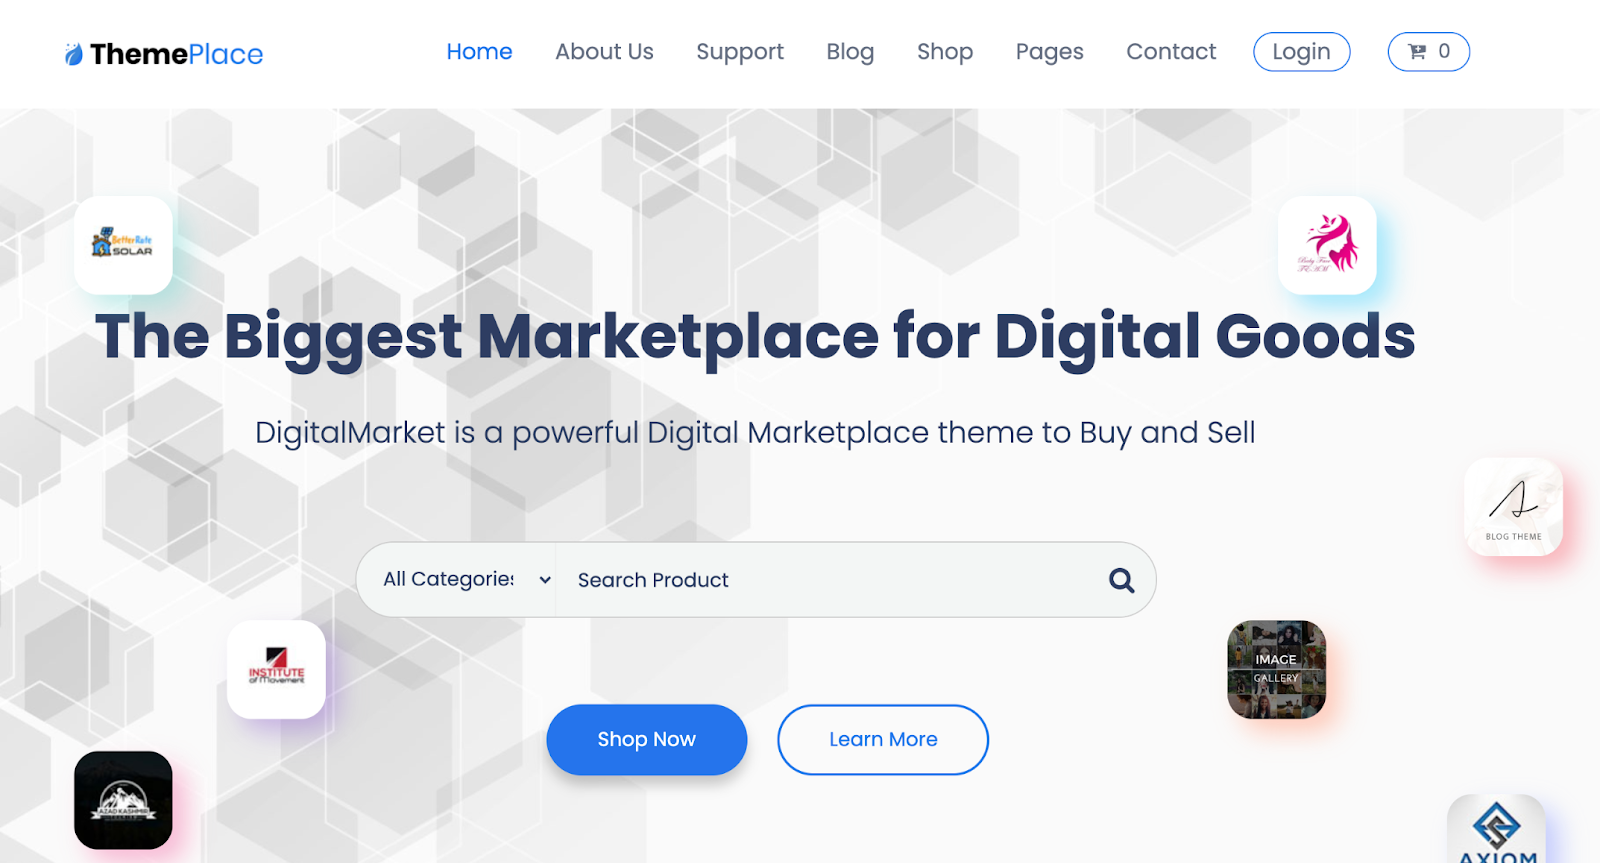 ThemePlace WordPress Marketplace theme homepage featuring the tagline